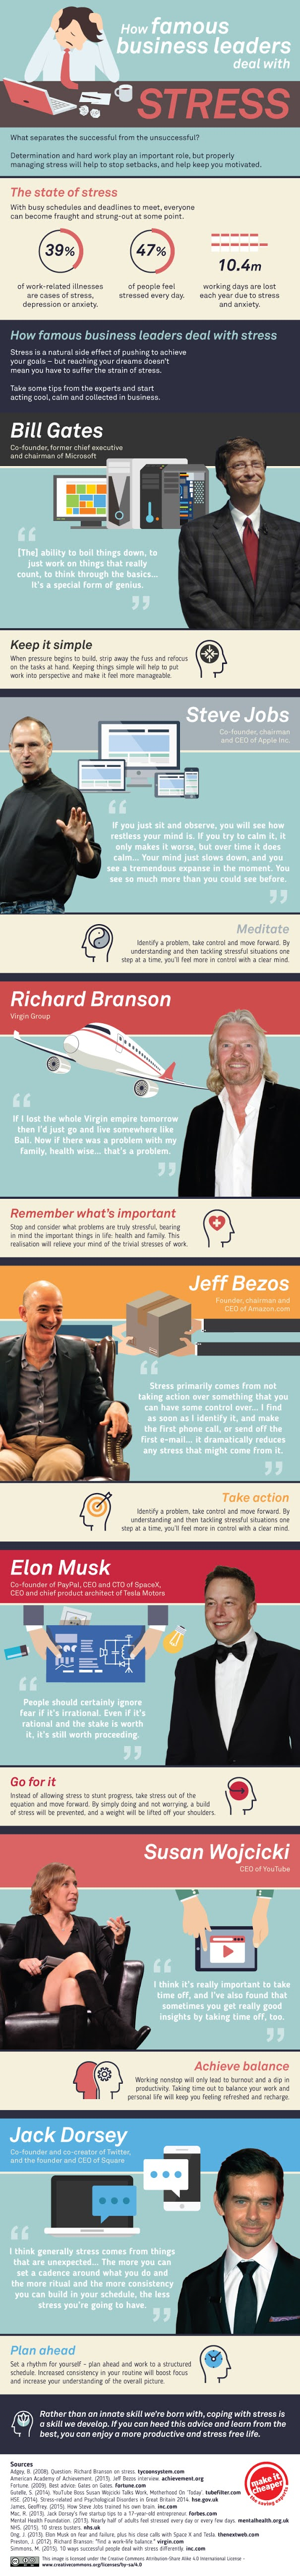 How Famous Business Leaders Deal With Stress #infographic #Anxiety #Business #Conscious #infographic #Health #Stress #infographics #Business Leaders